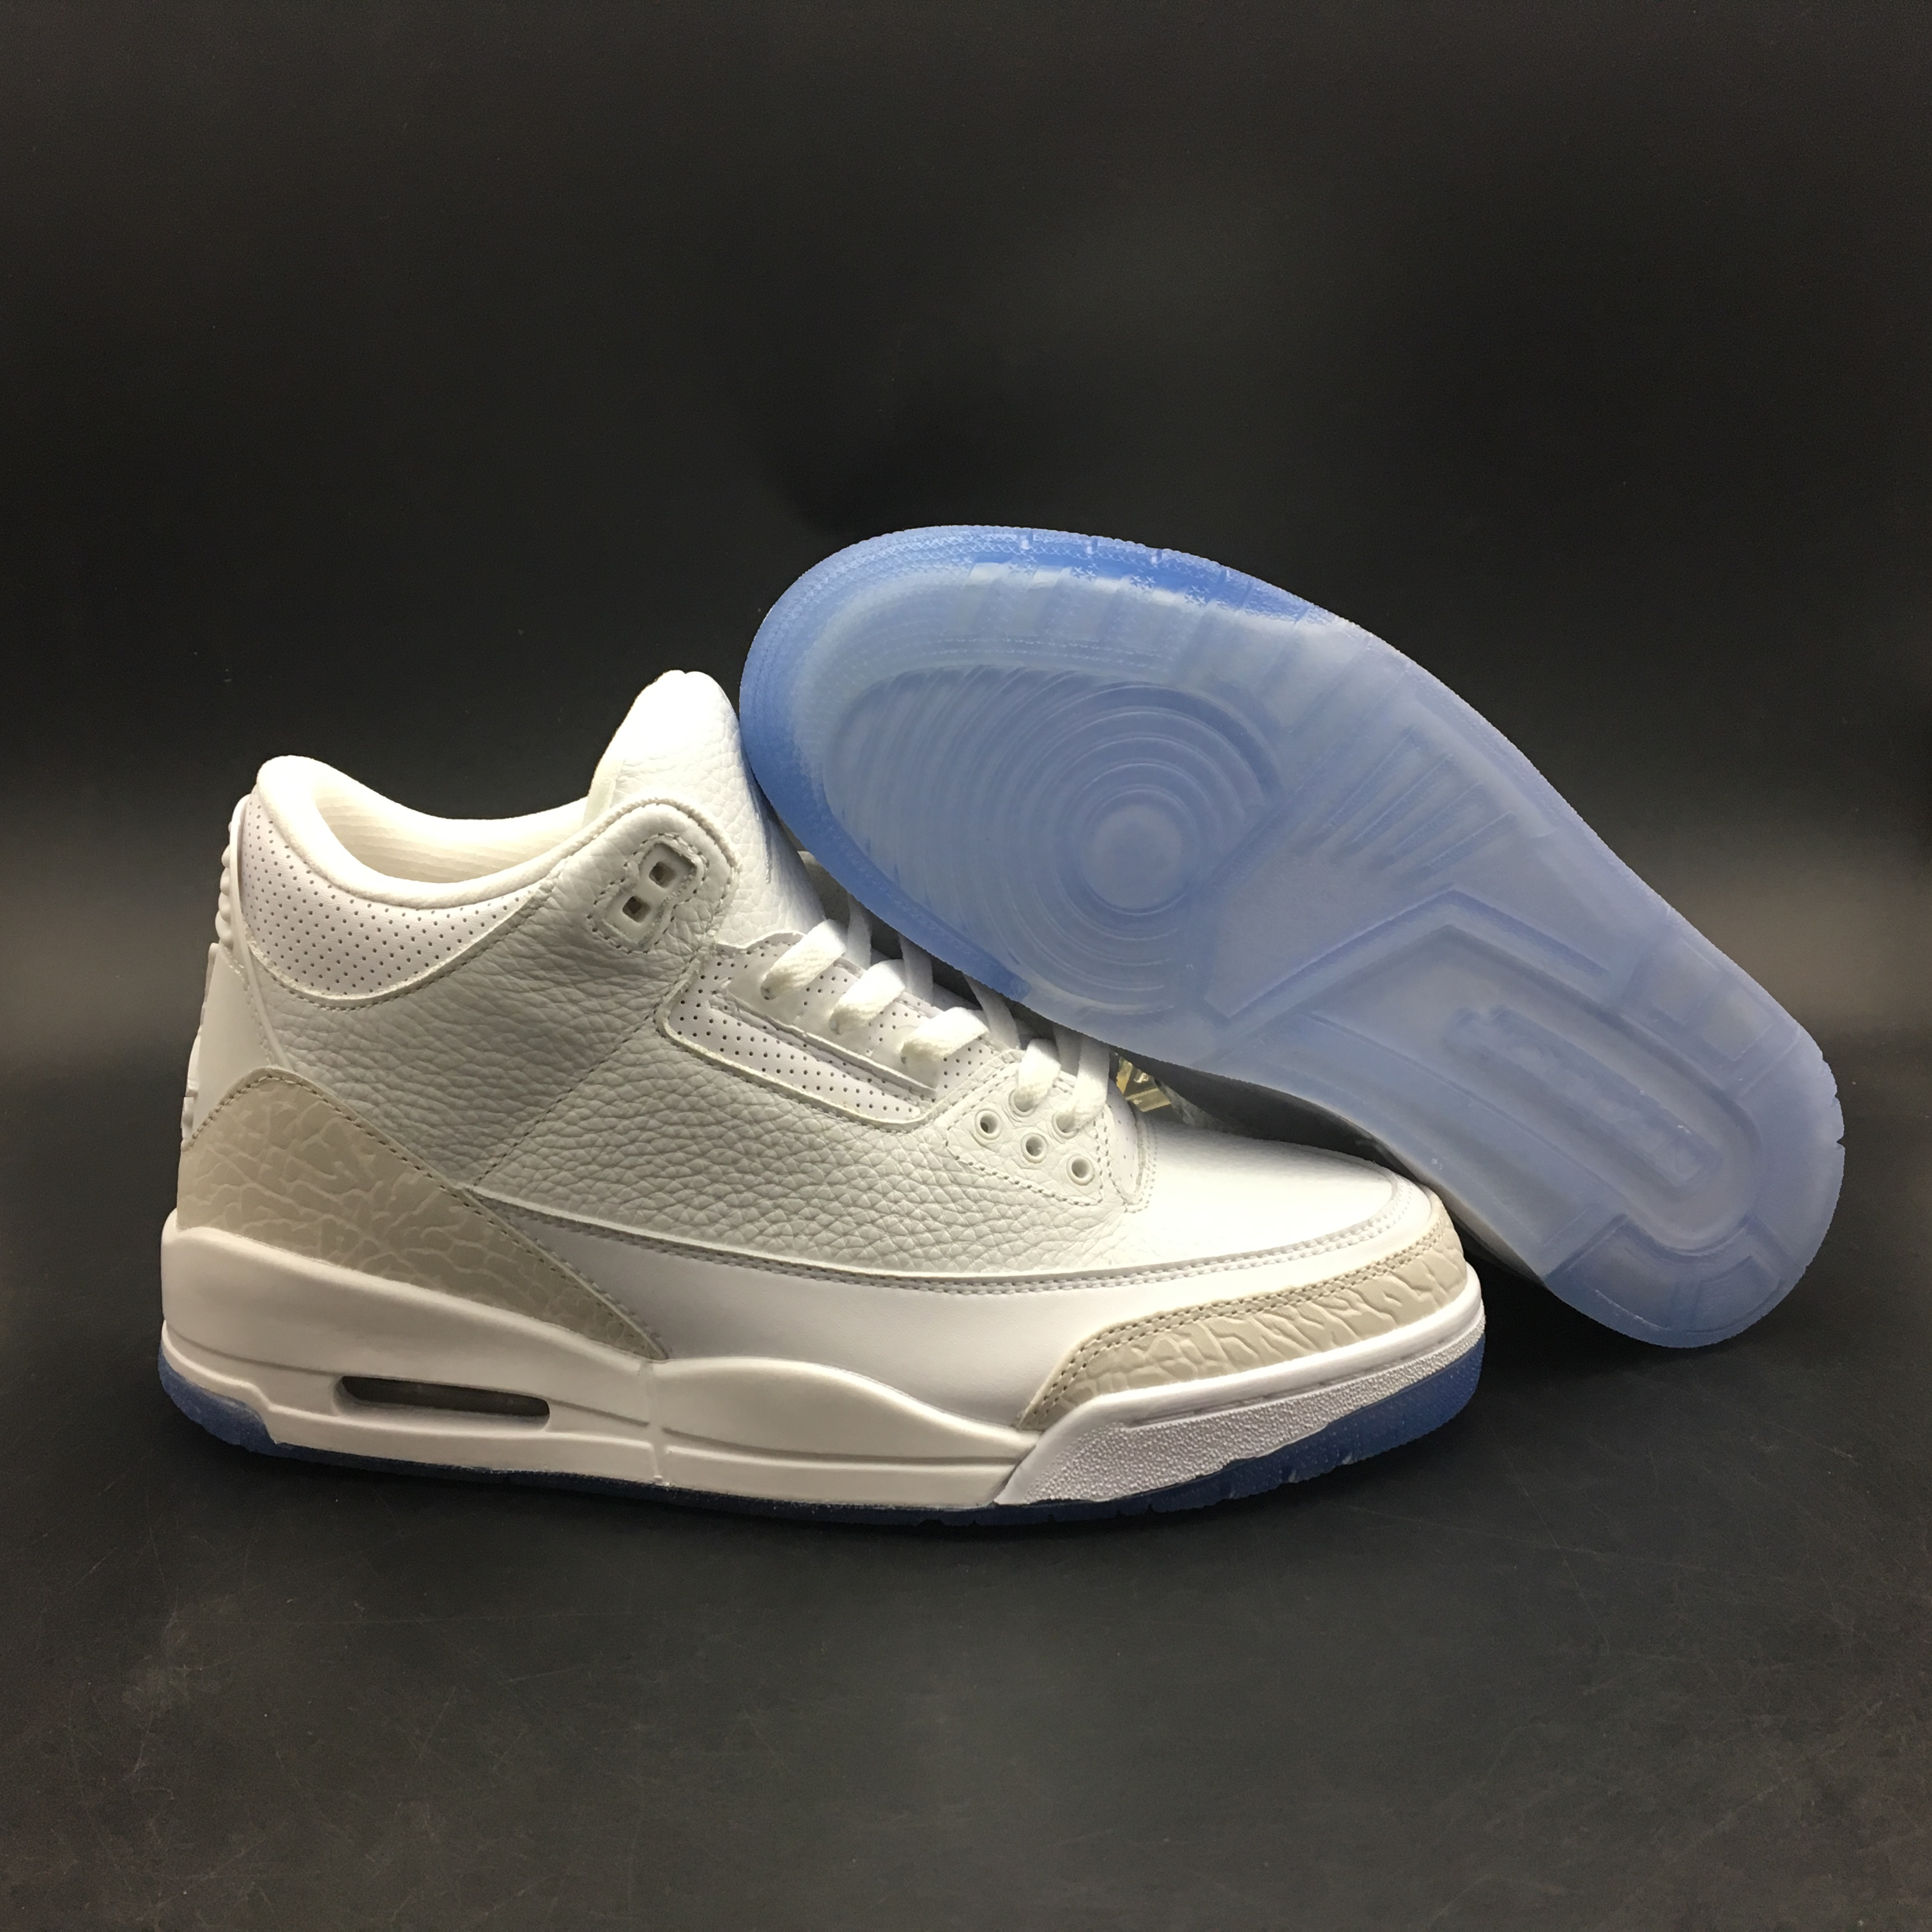 New Air Jordan 3 Pure White Ice Sole Shoes